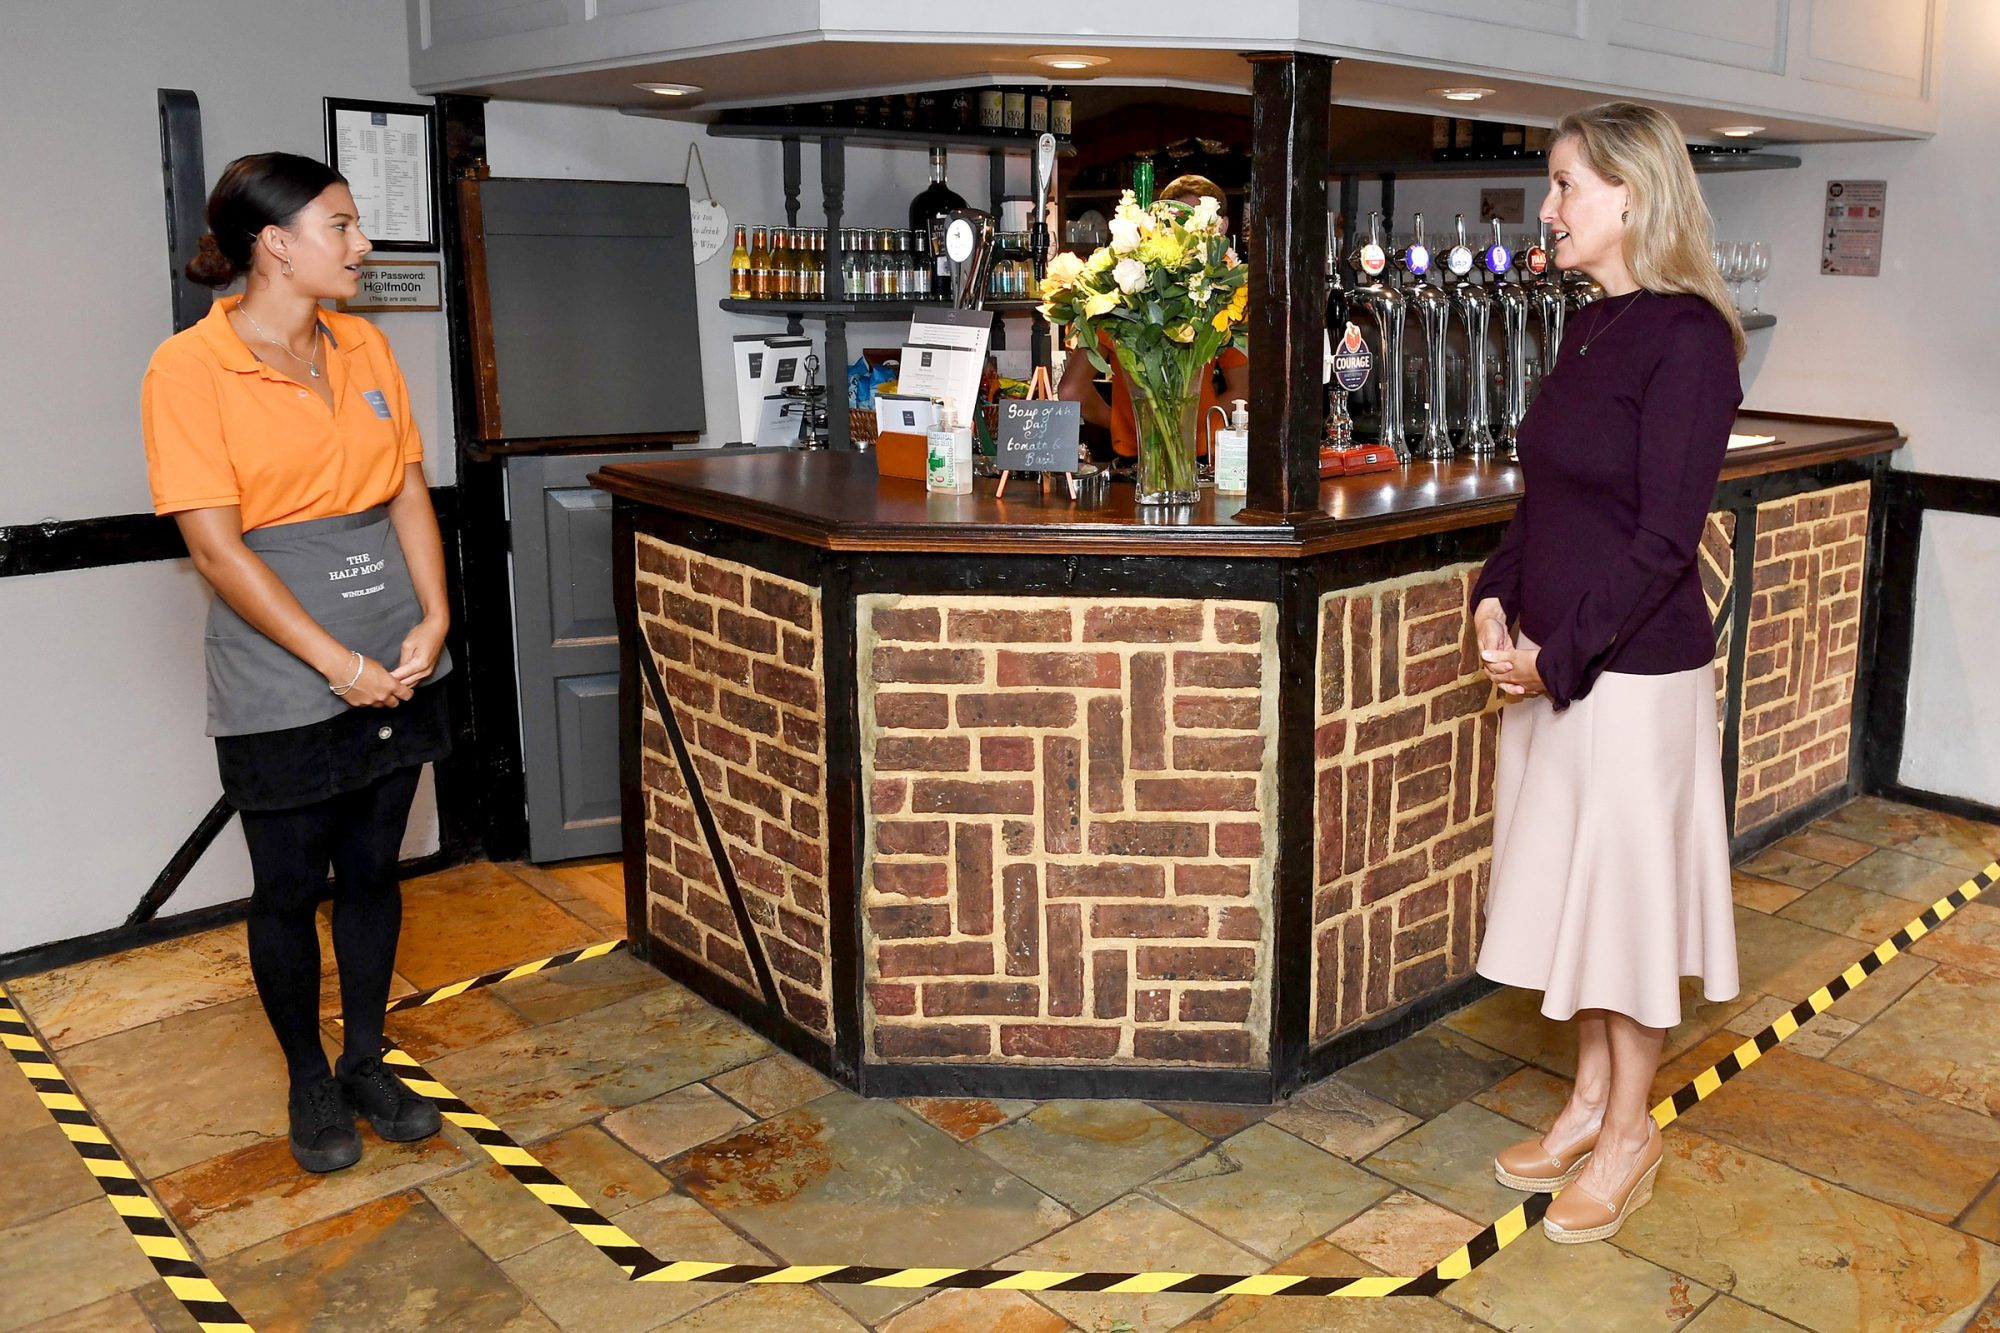 Sophie The Countess Of Wessex Visits The Half Moon Public House In Windlesham